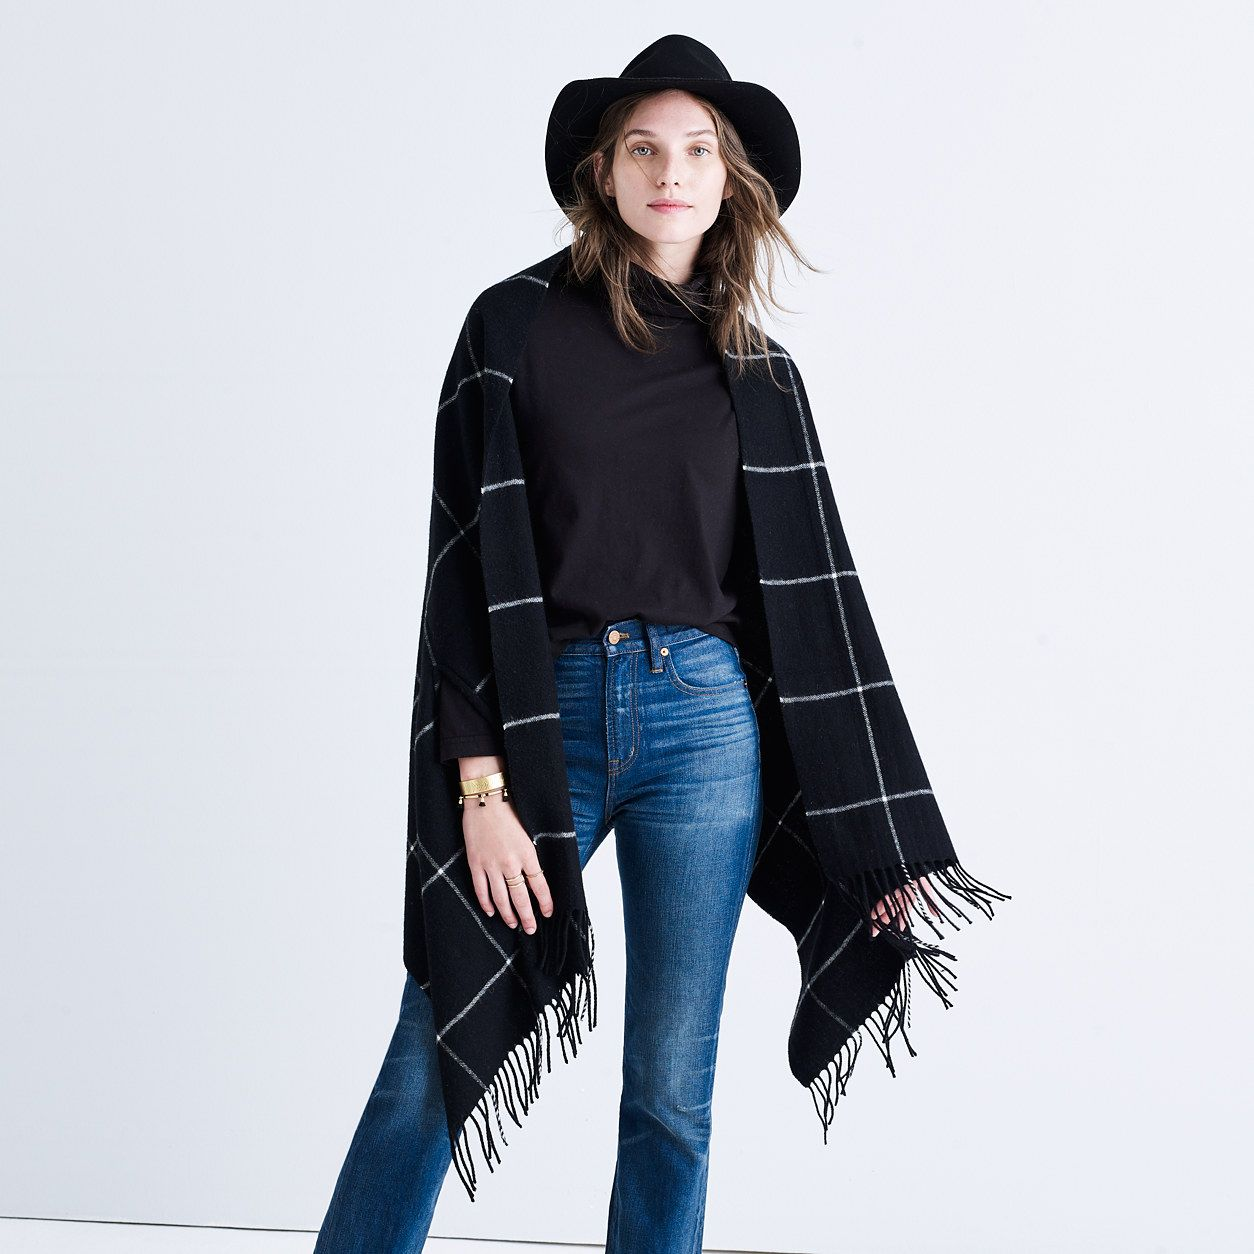 """A superwarm, goes-with-everything scarf in a minimalist grid design. Choose from two classic color combos—this is one you'll reach for over and over. <ul><li>Wool.</li><li>78 3/4""""L x 27 1/2""""W.</li><li>Dry clean.</li><li>Import.</li></ul>"""